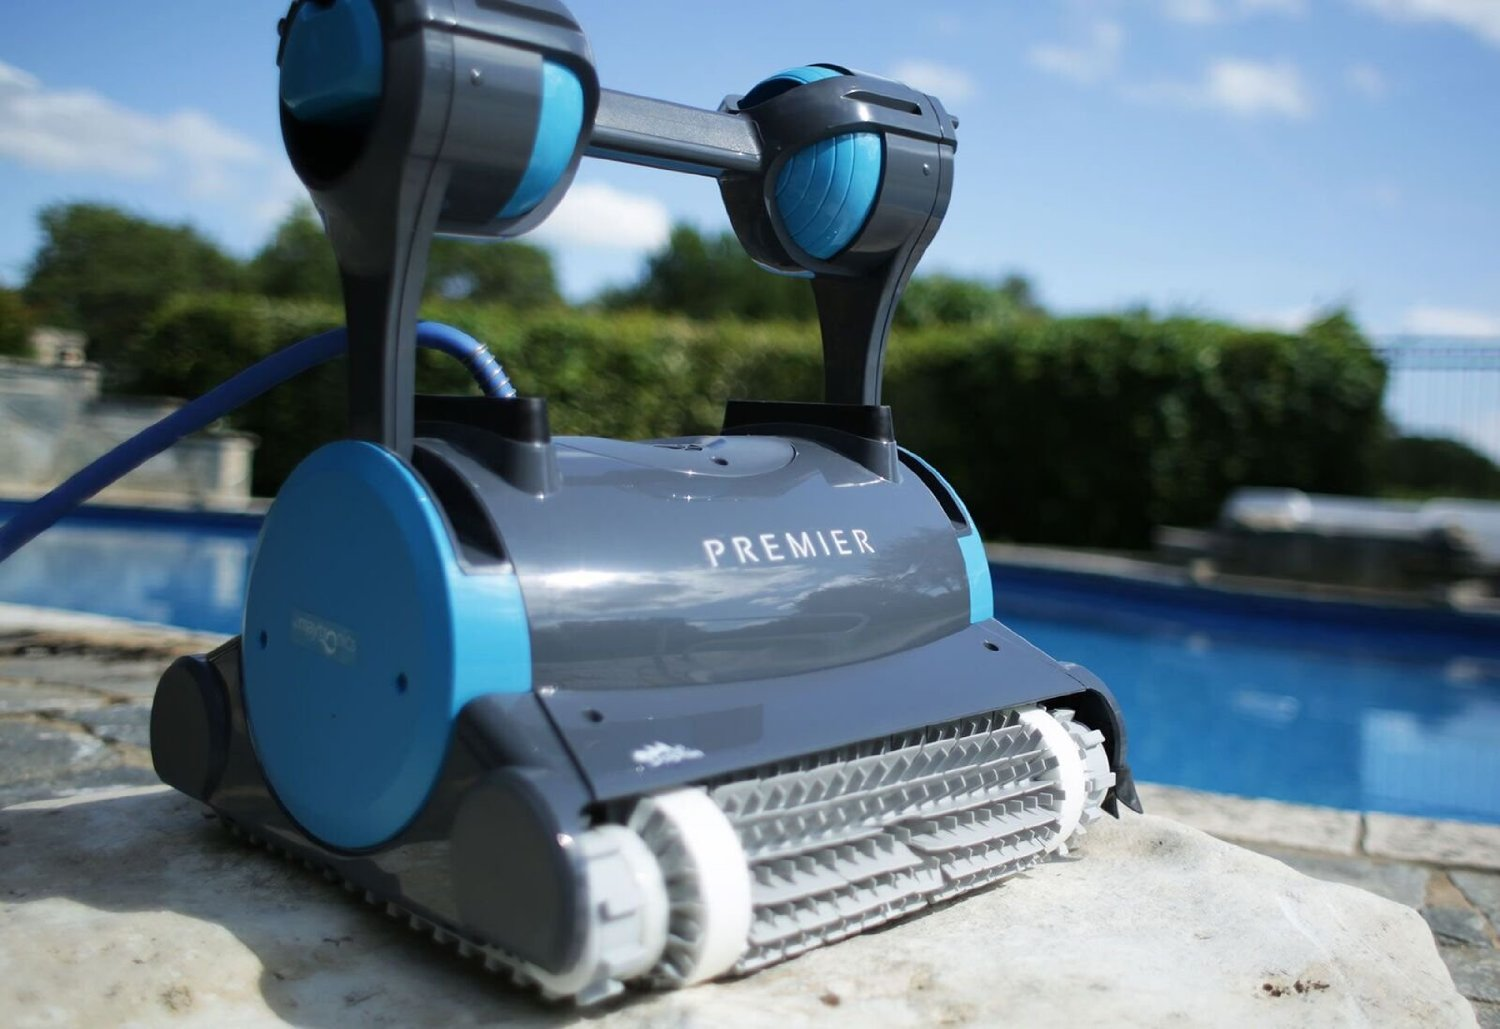 Dolphin Premier Pool Cleaner Is It The Best Pool Robotic